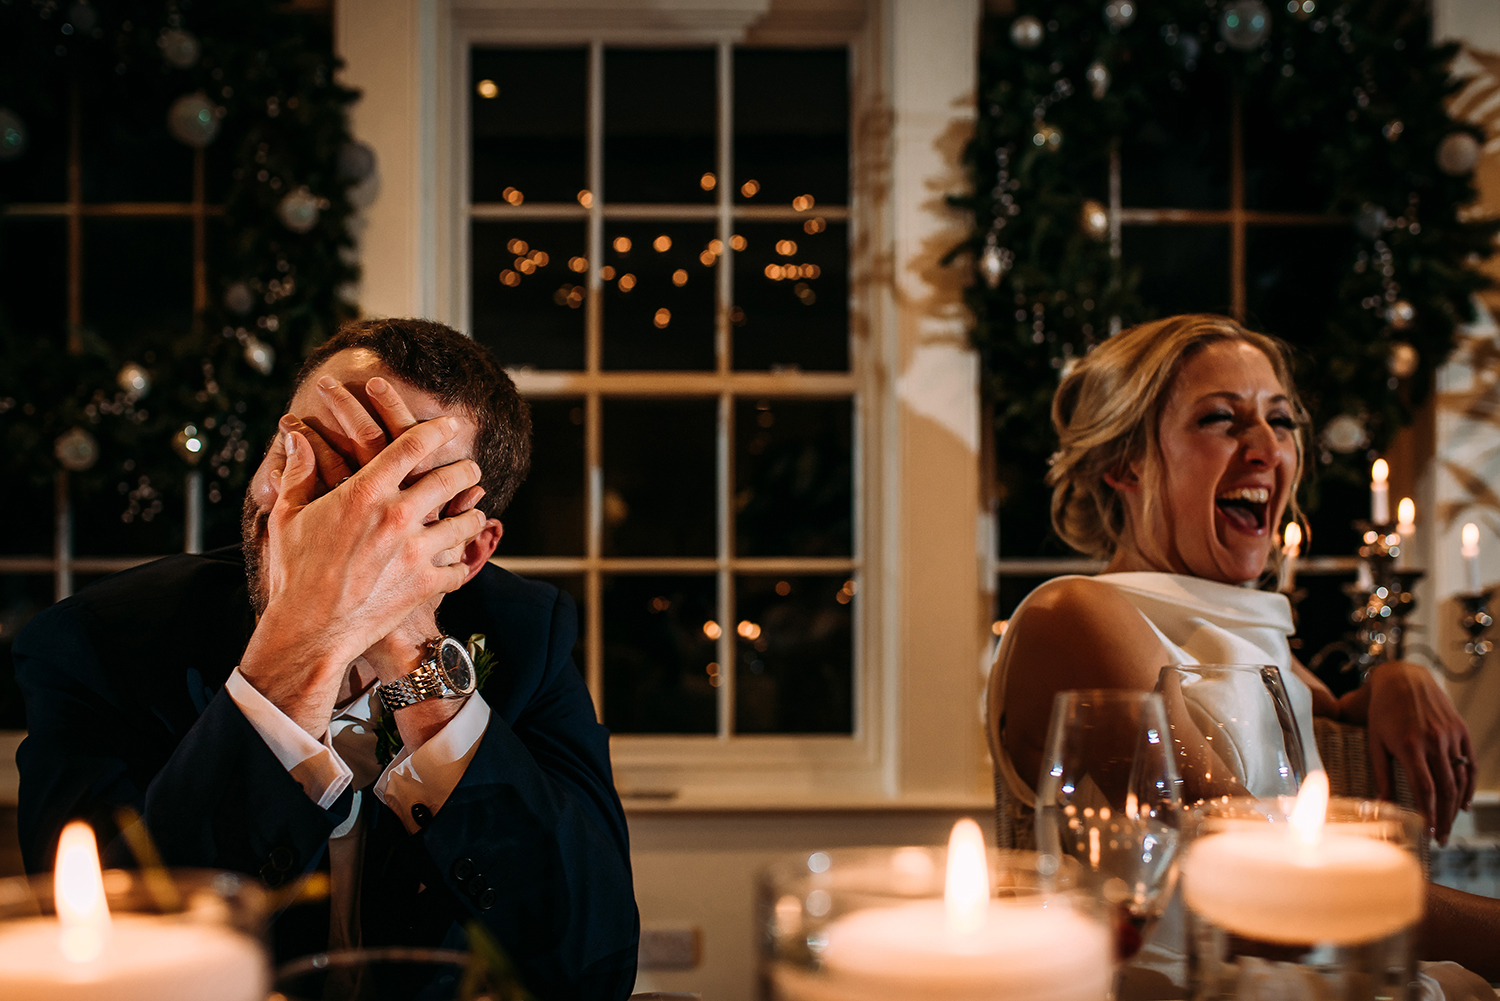 Groom head in hands, bride to his side laughing